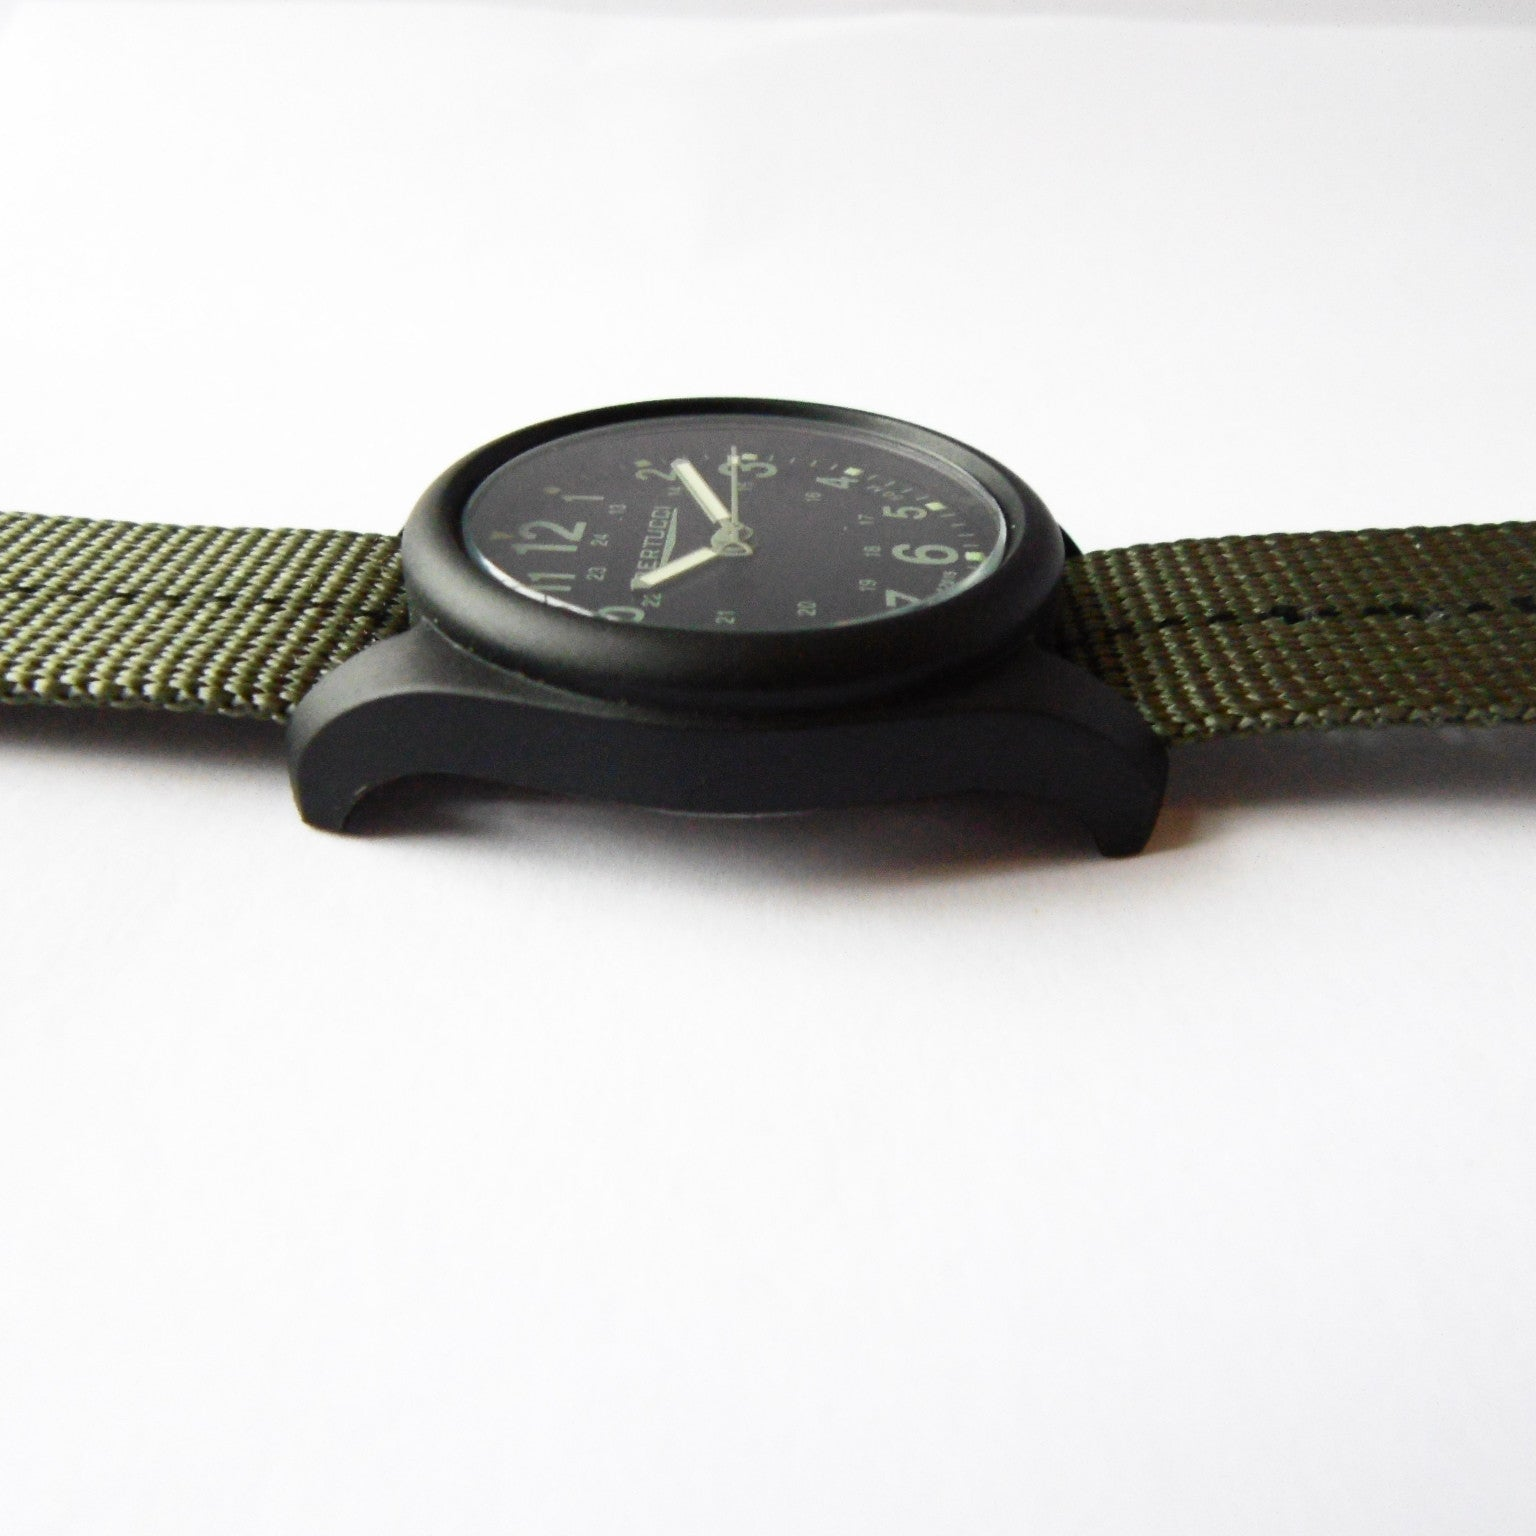 Bertucci DX3 Plus Field Resin Watch (Dash-Striped Drab Nylon Strap) 11040 - Watchfinder General - UK suppliers of Russian Vostok Parnis Watches MWC G10  - 4